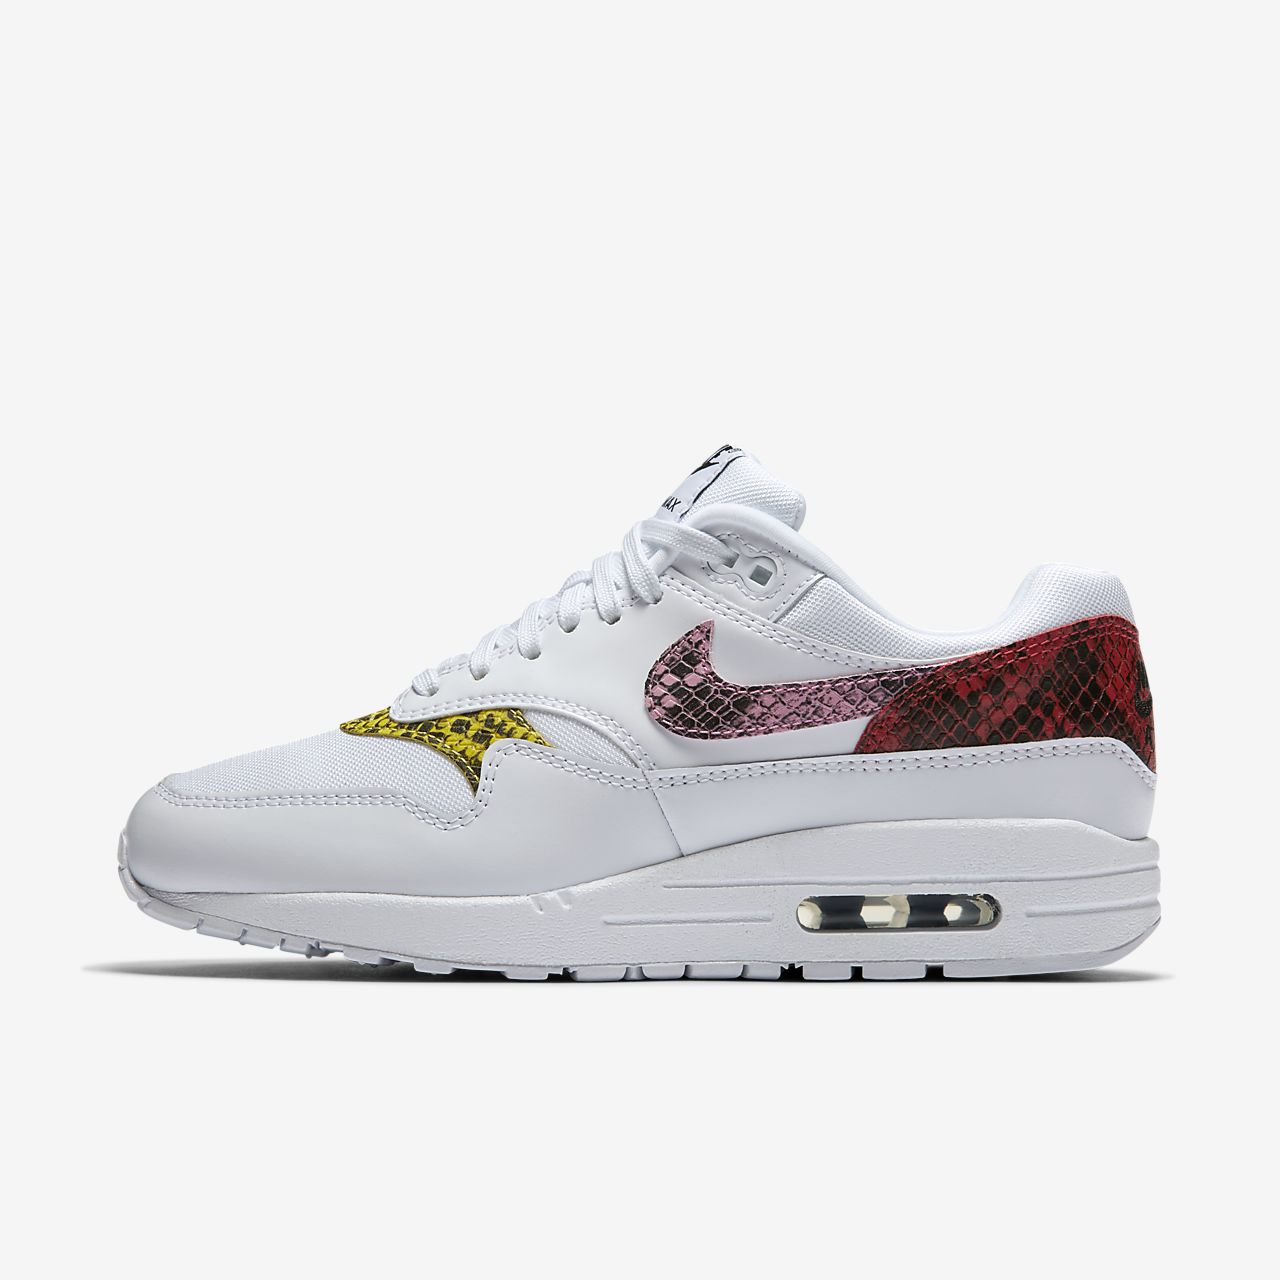 new concept adcaa ac4a1 ... Buty damskie Nike Air Max 1 Premium Animal